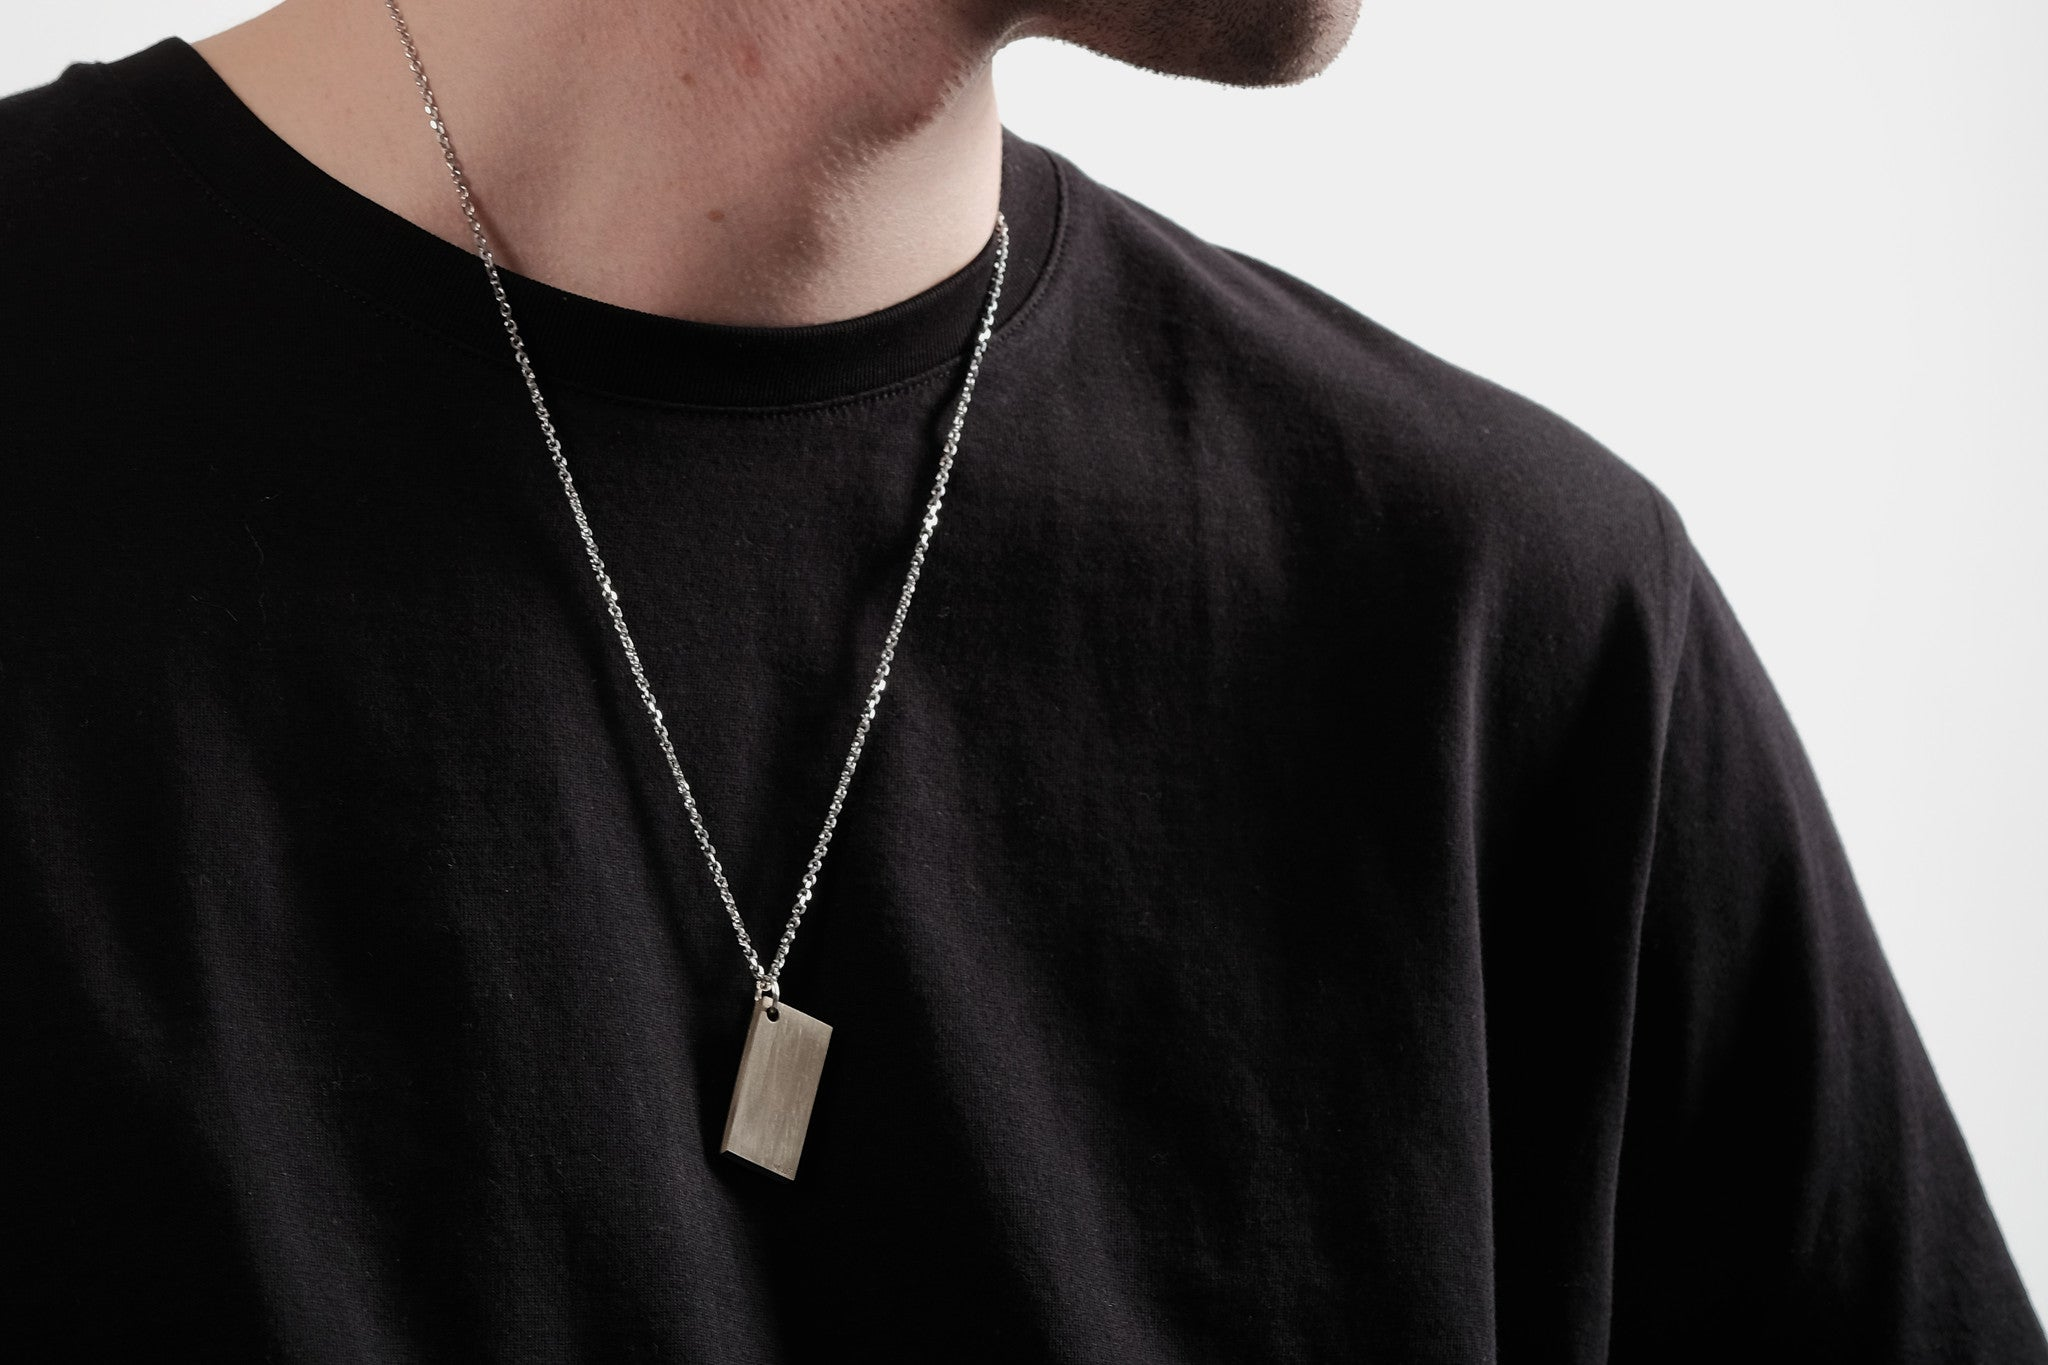 CS 16mm Pendant Necklace // Brass - Men's Pendant Necklace - MUJO NYC - 2